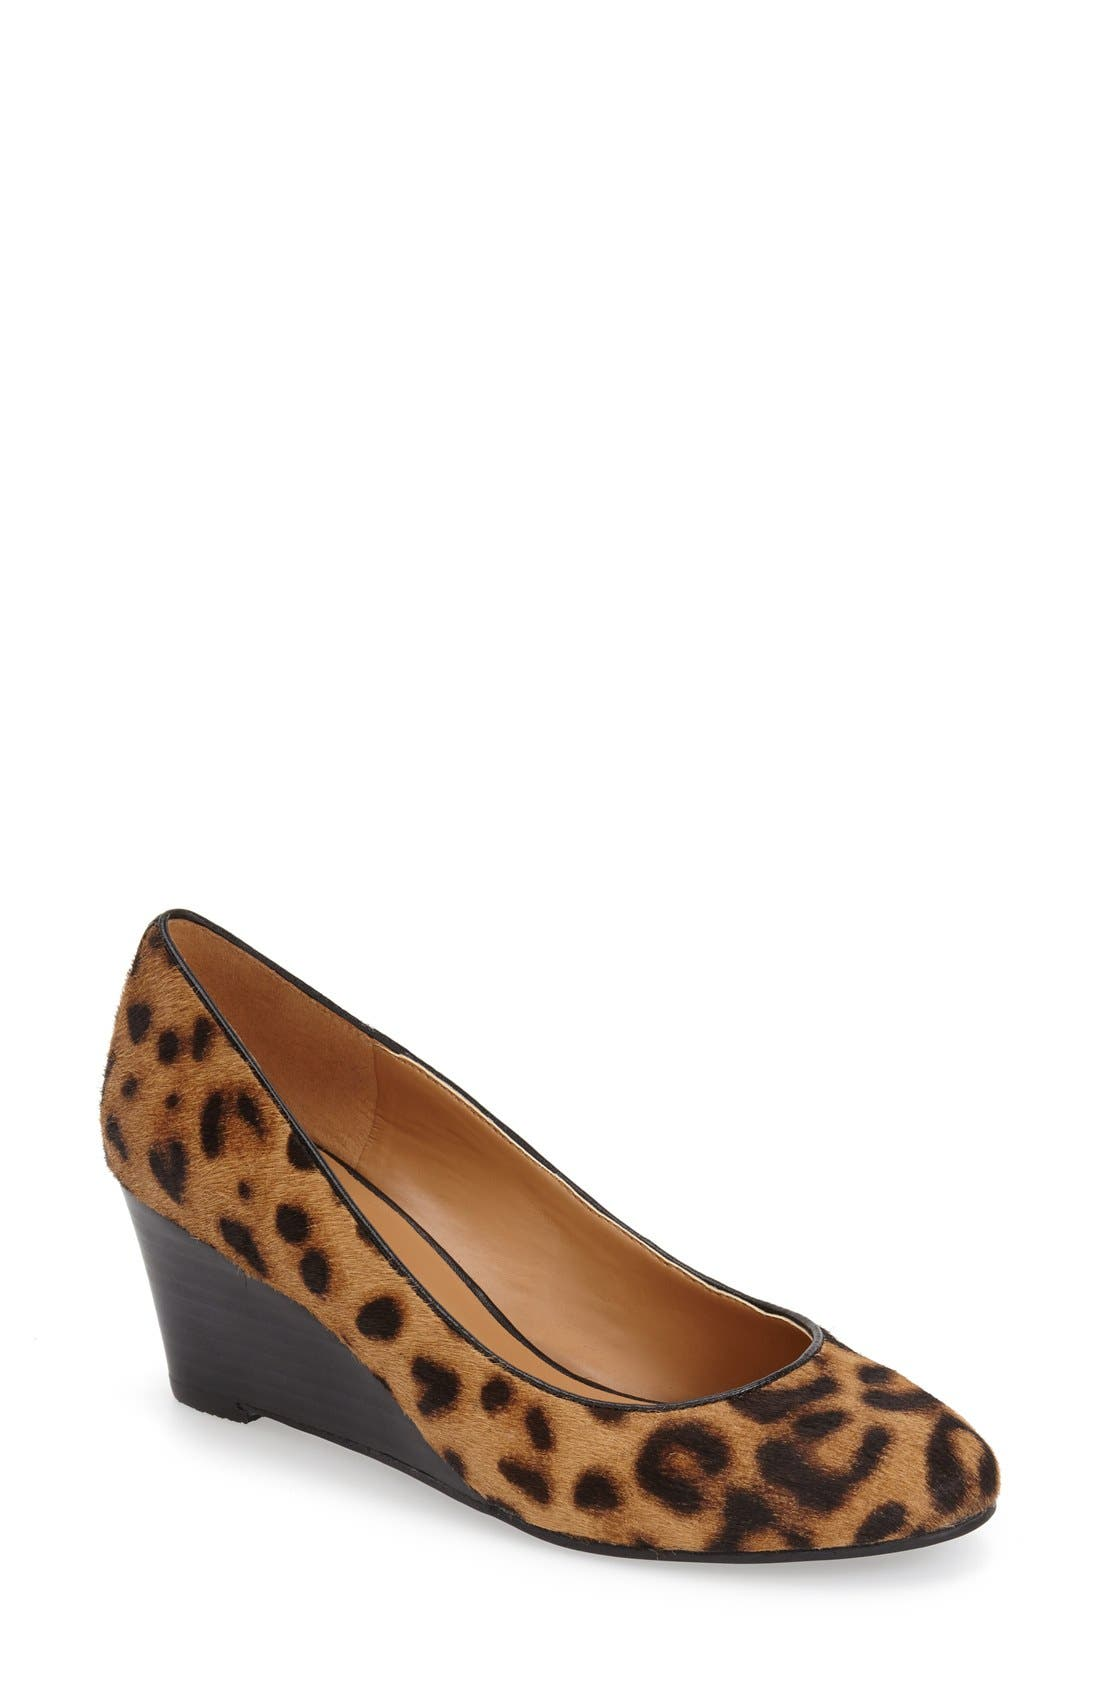 Main Image - Nine West 'Ispy' Wedge Pump (Women)